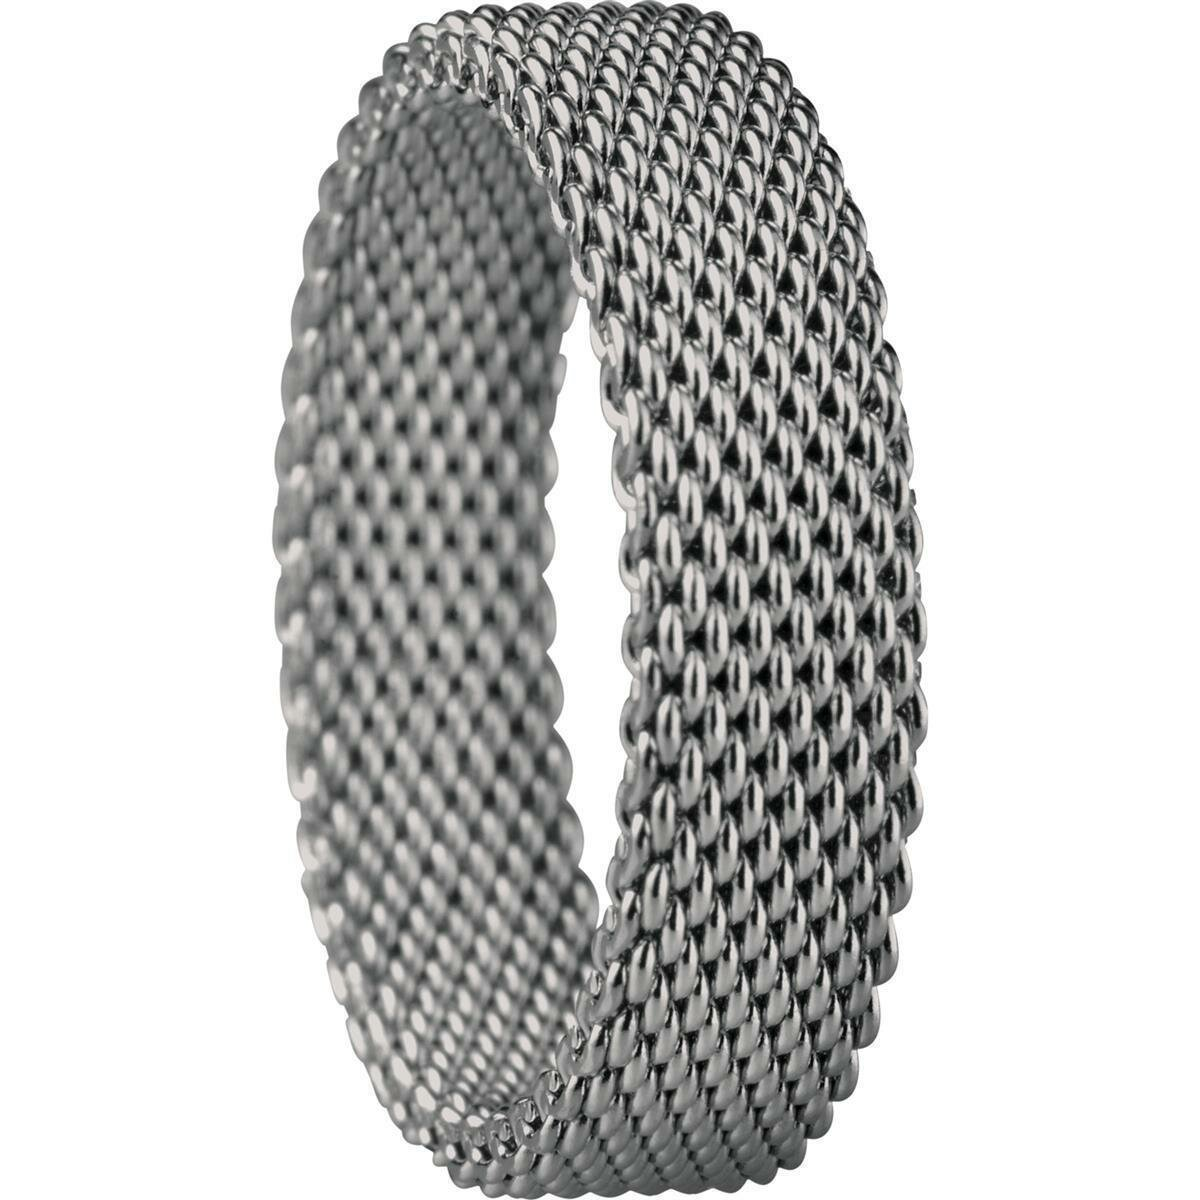 Bering Innenring 551-10-132 Milanaise silber